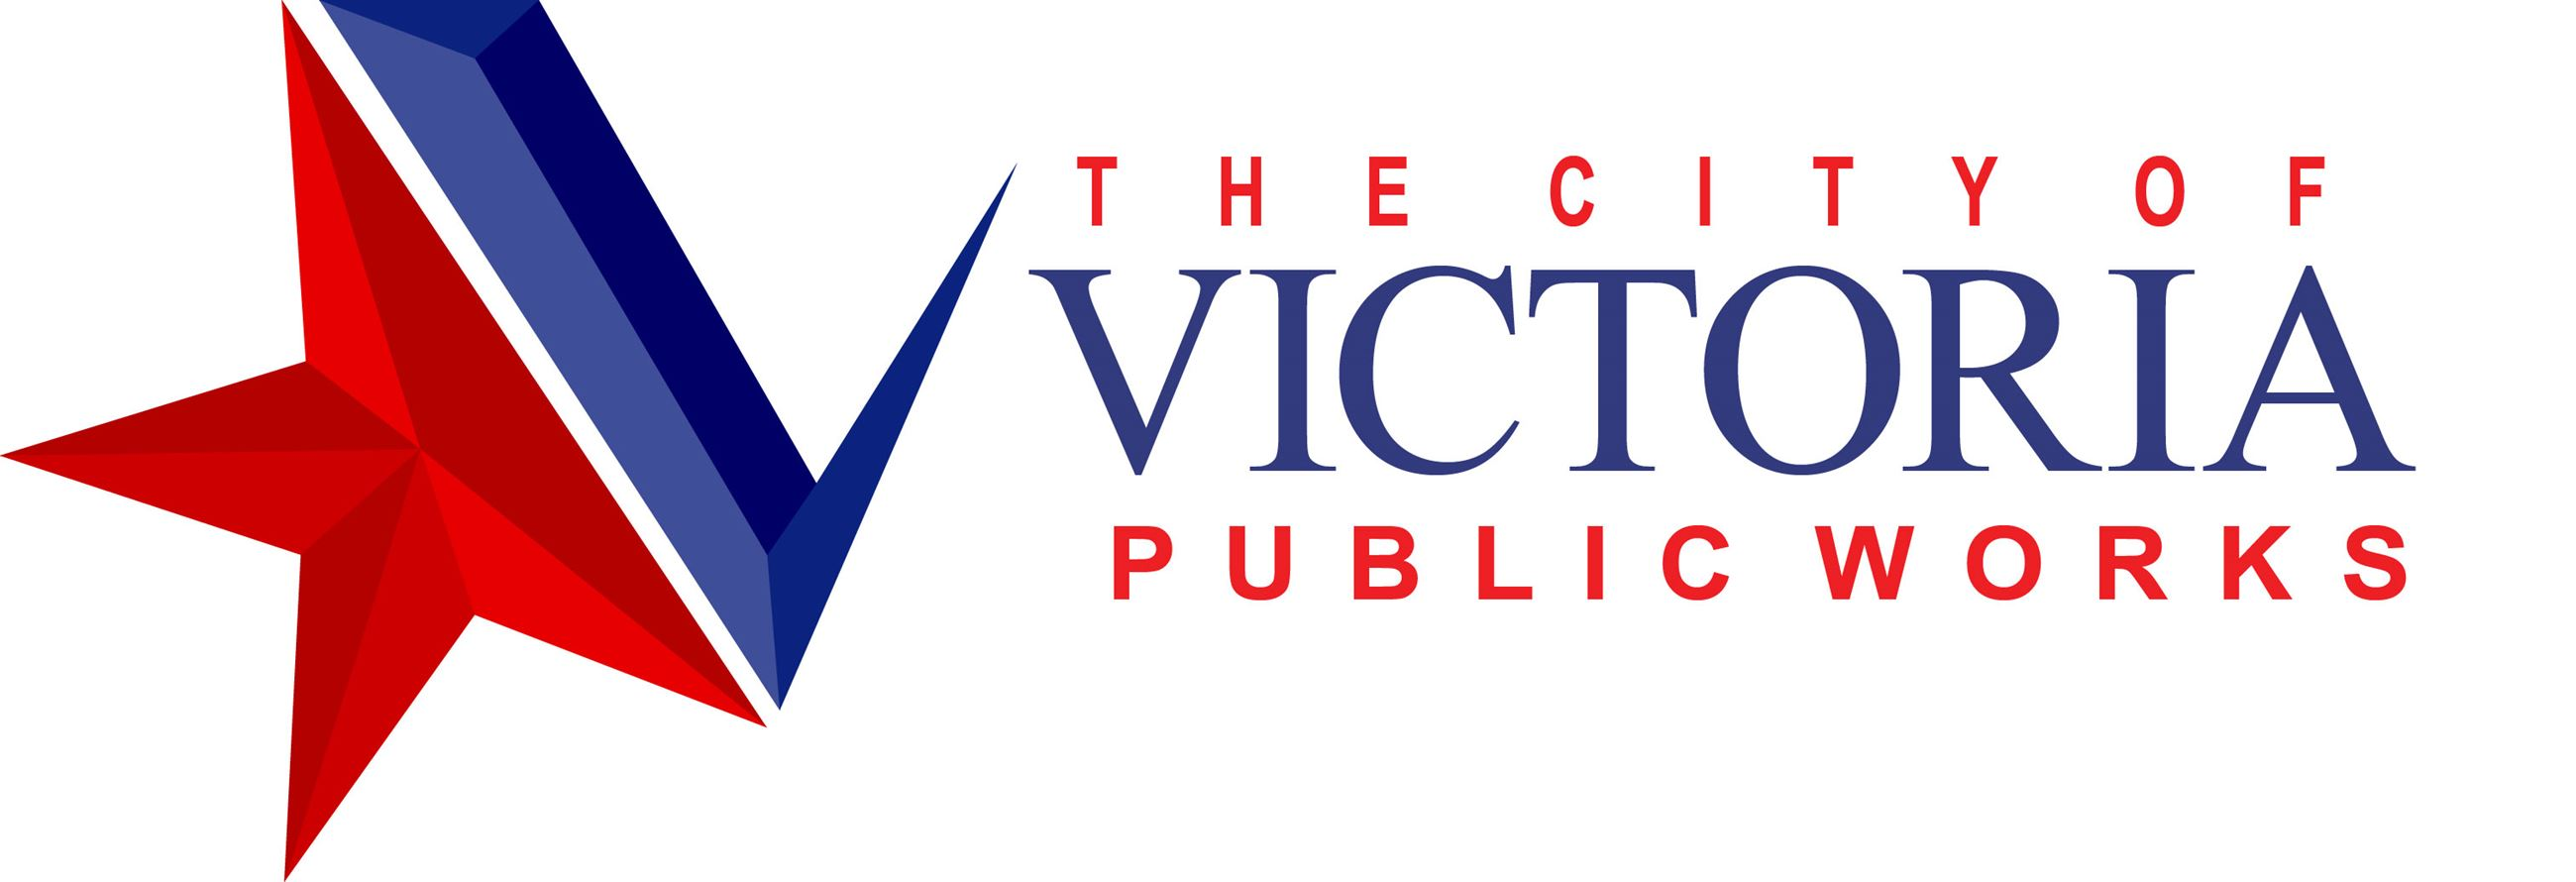 City of Victoria Public Works logo